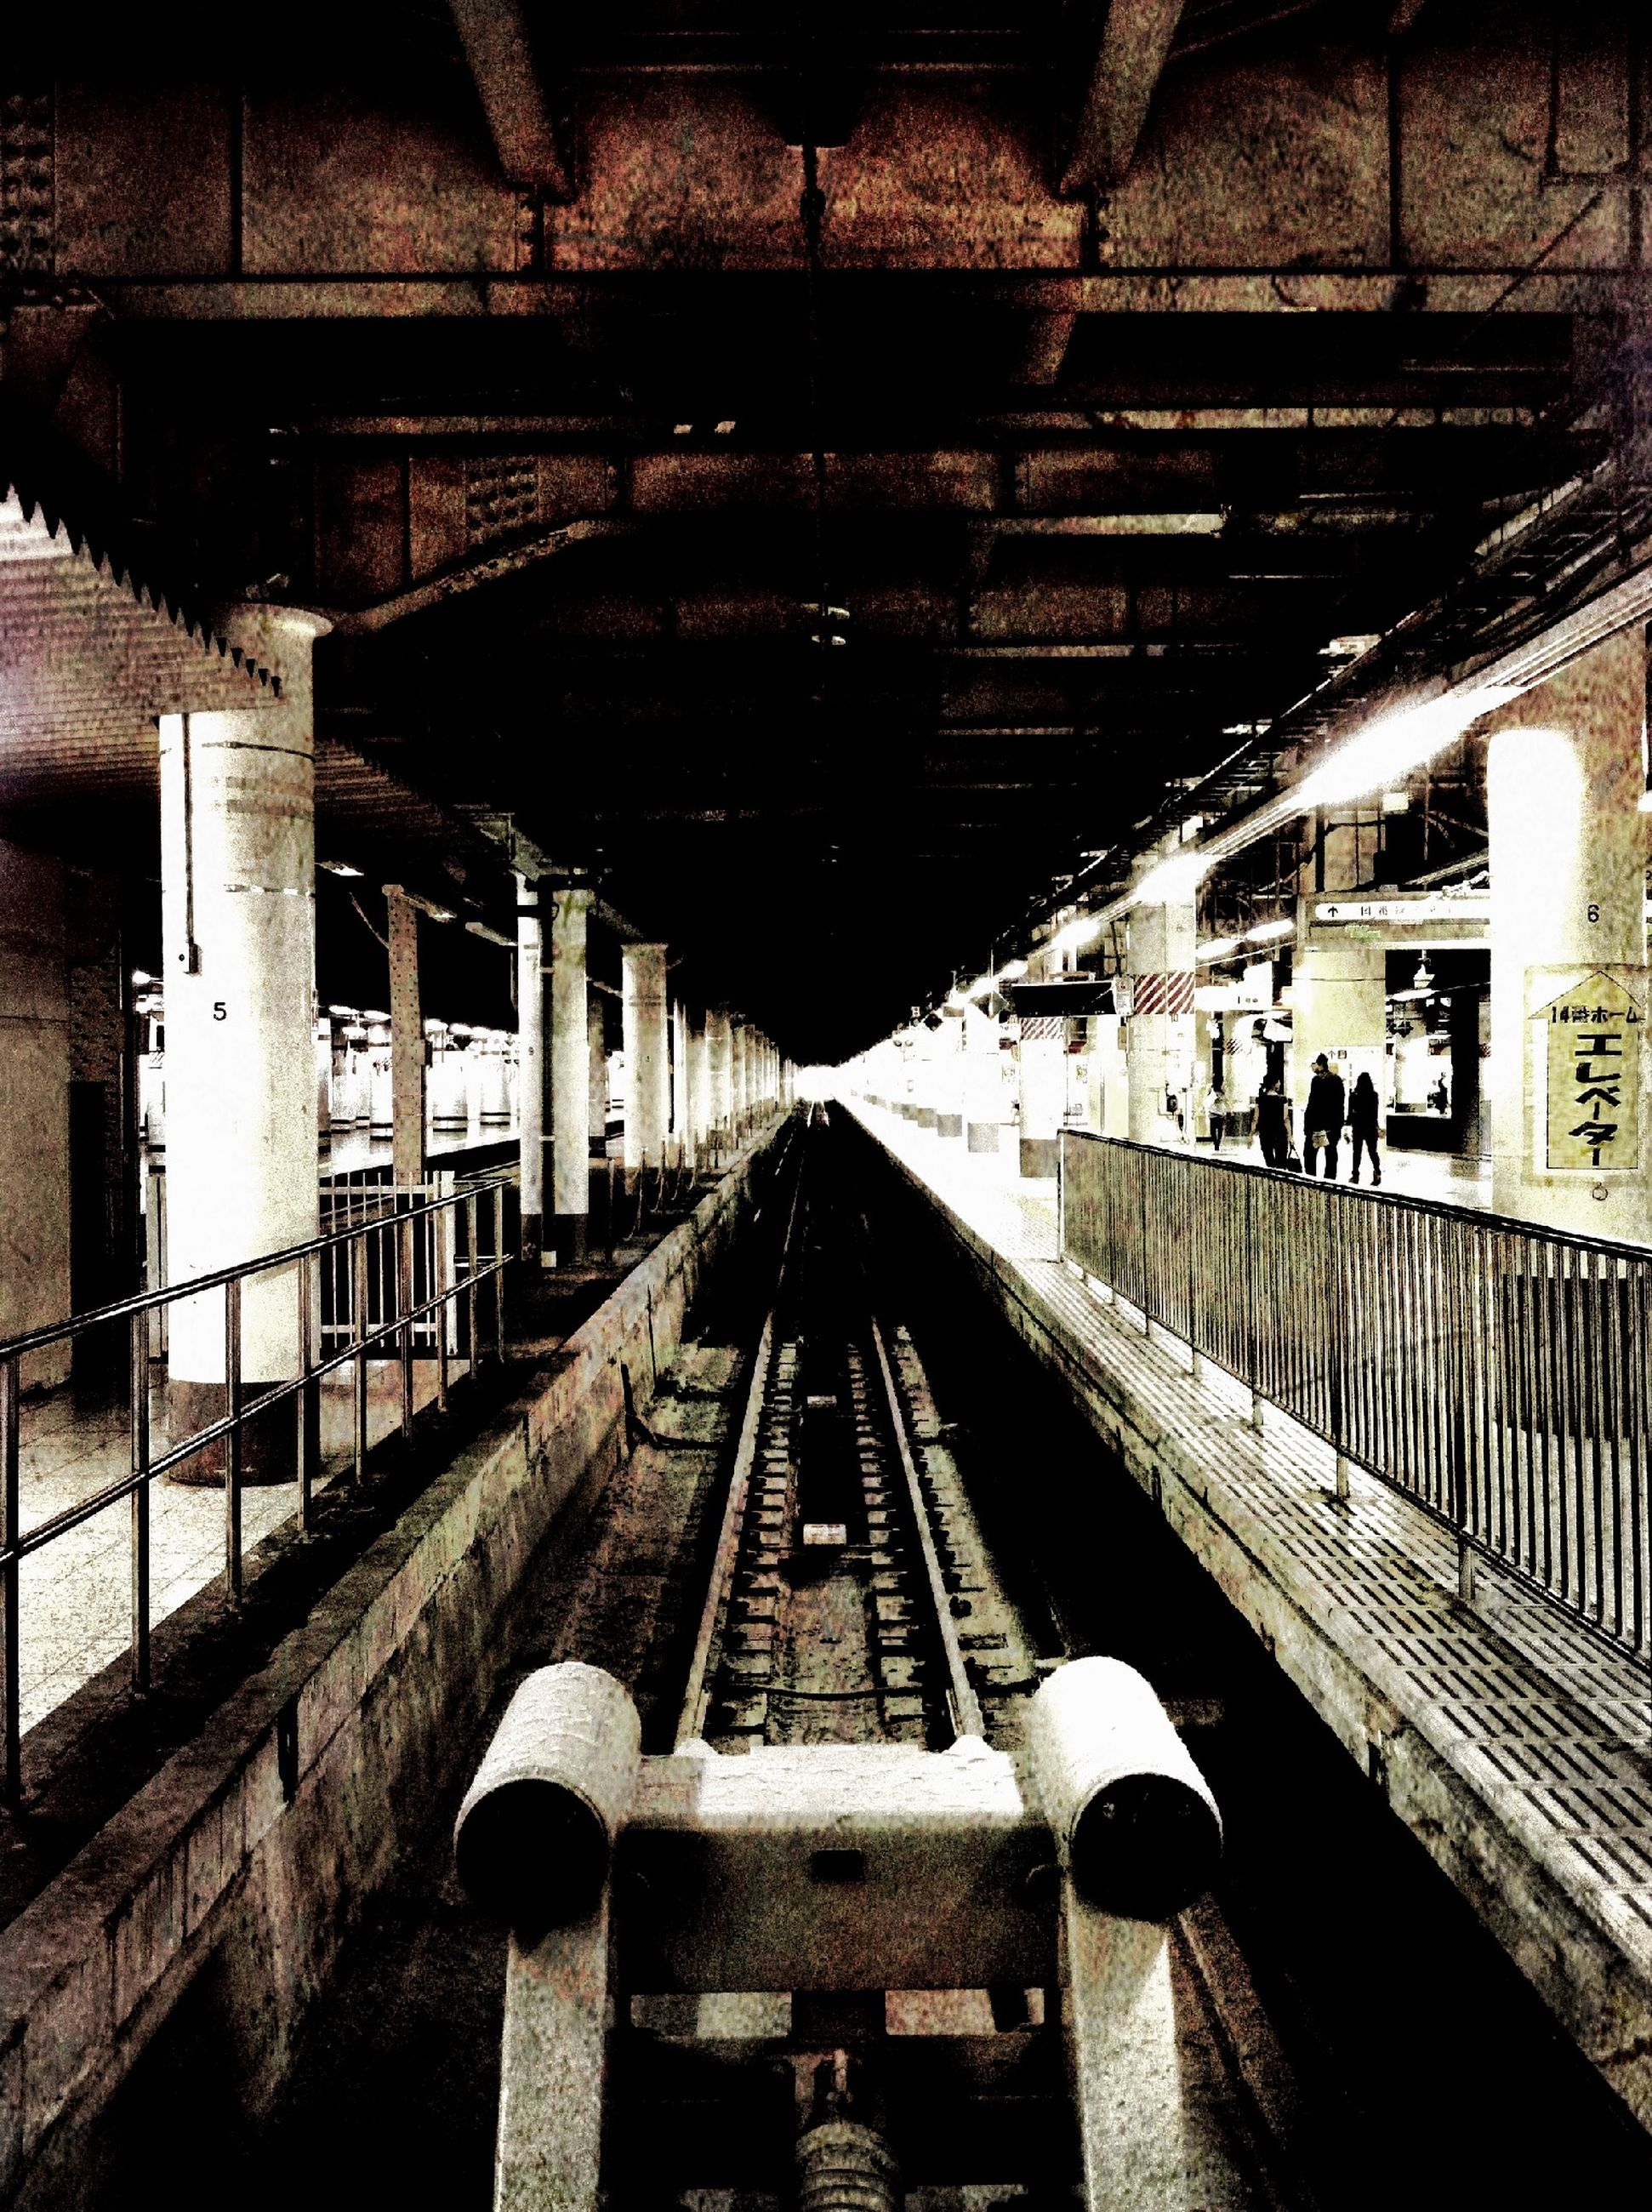 railroad track, rail transportation, railroad station platform, the way forward, architecture, railroad station, diminishing perspective, transportation, built structure, public transportation, indoors, vanishing point, incidental people, railway track, ceiling, travel, tunnel, metal, day